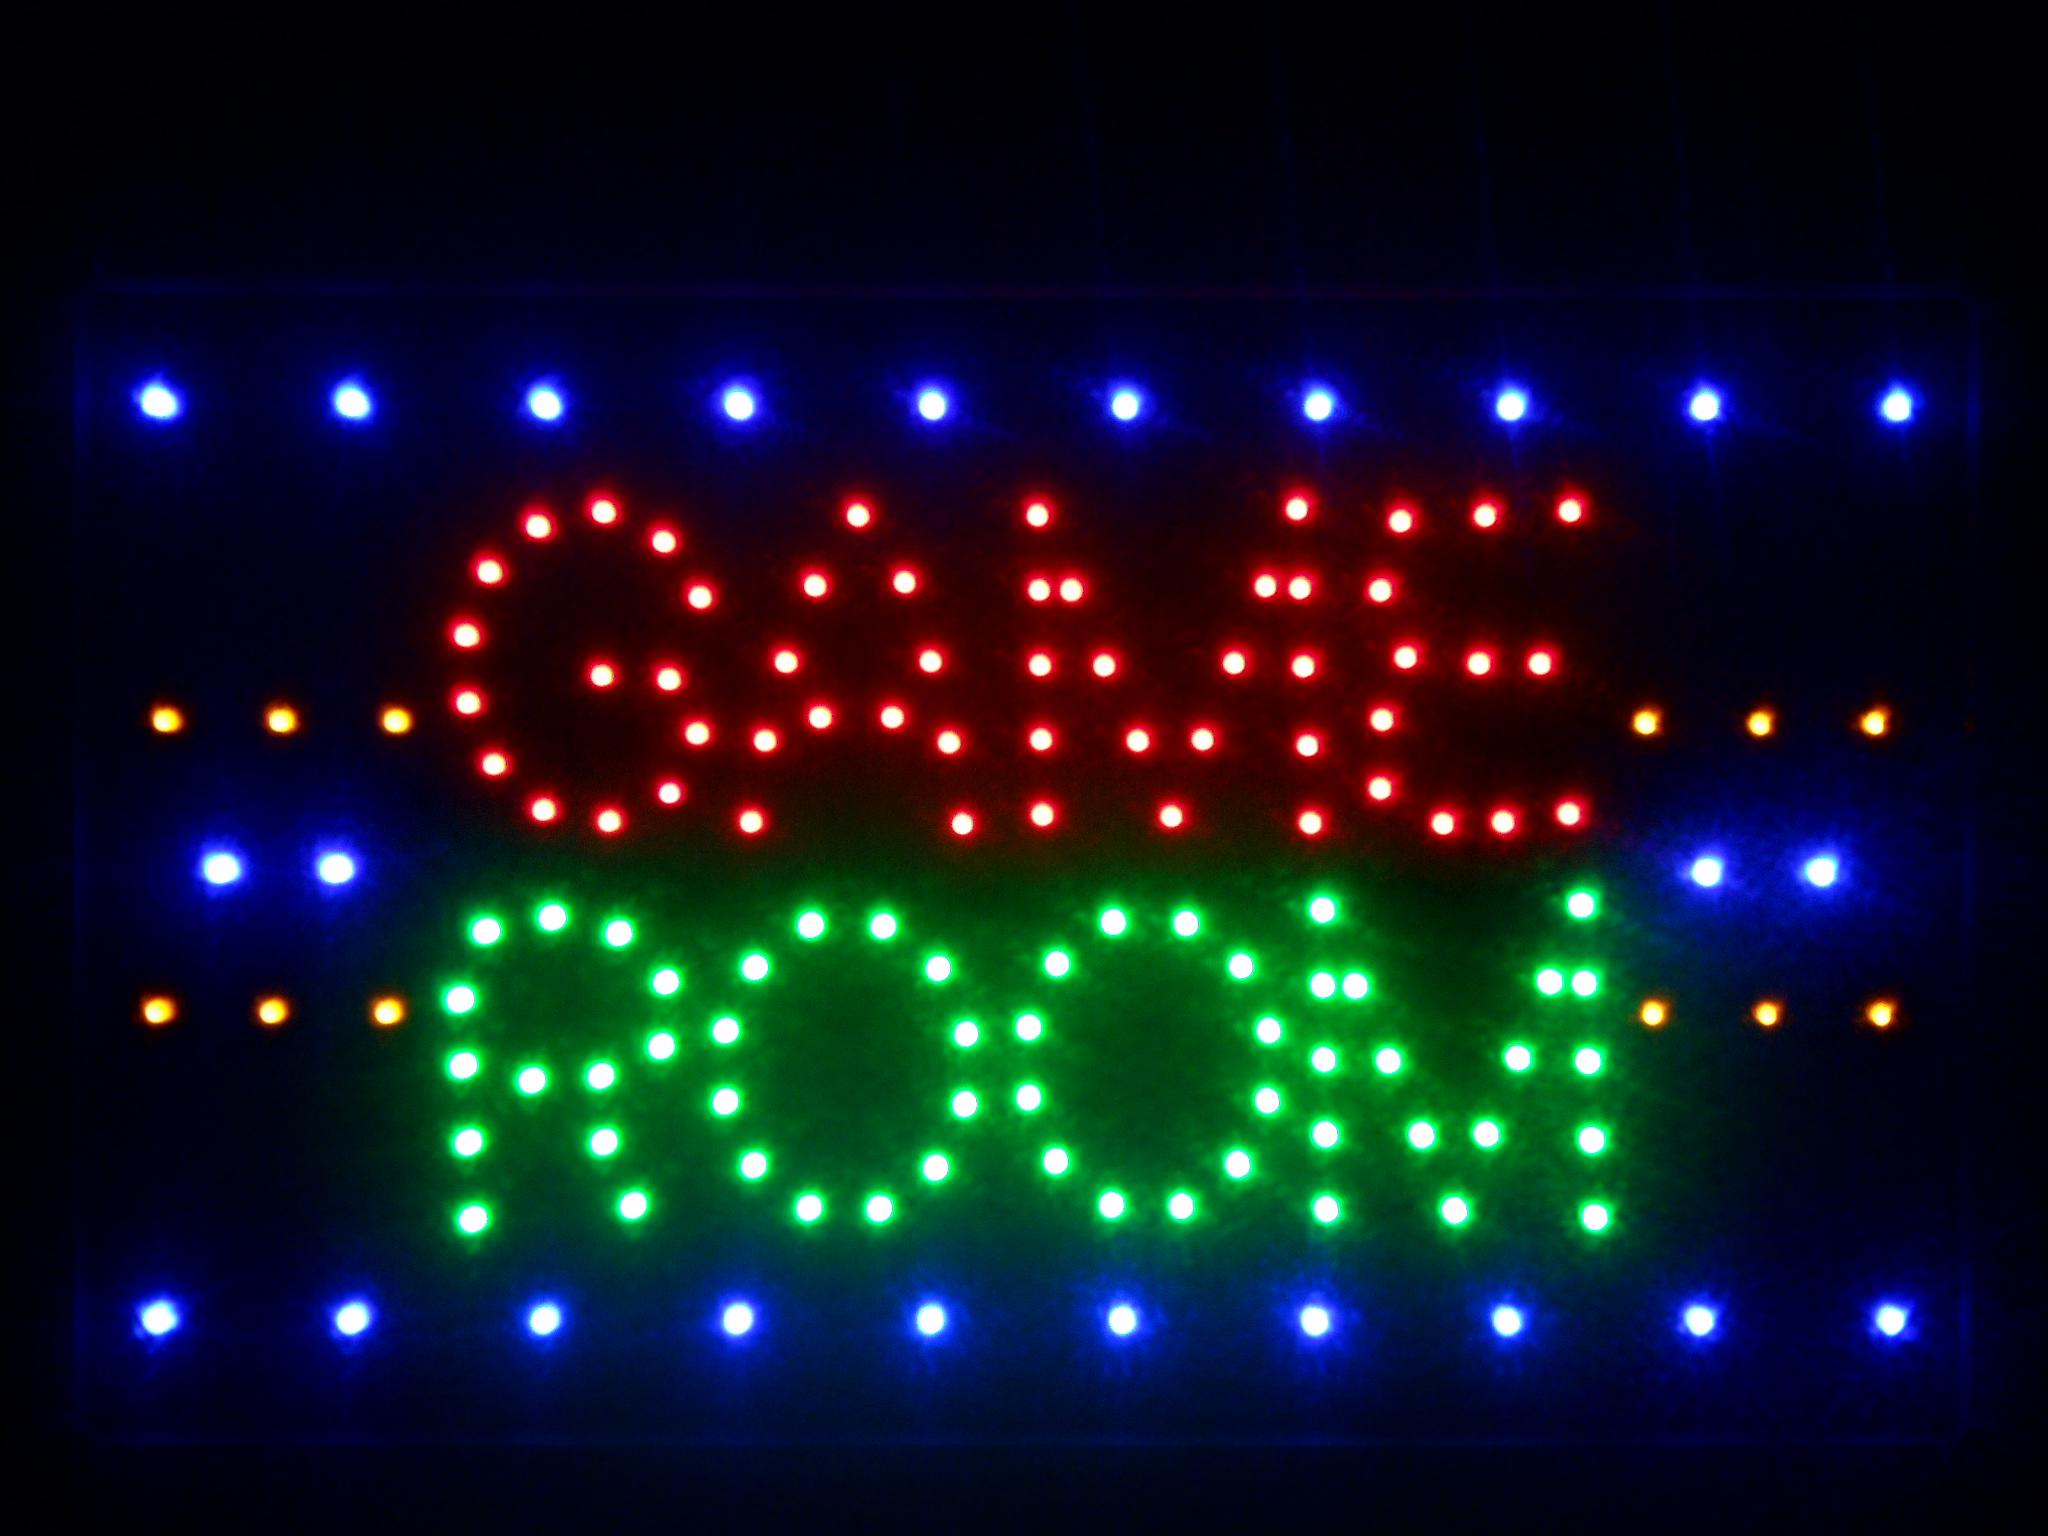 Nled047 R Game Room LED Neon Light Sign 16 X 10 From